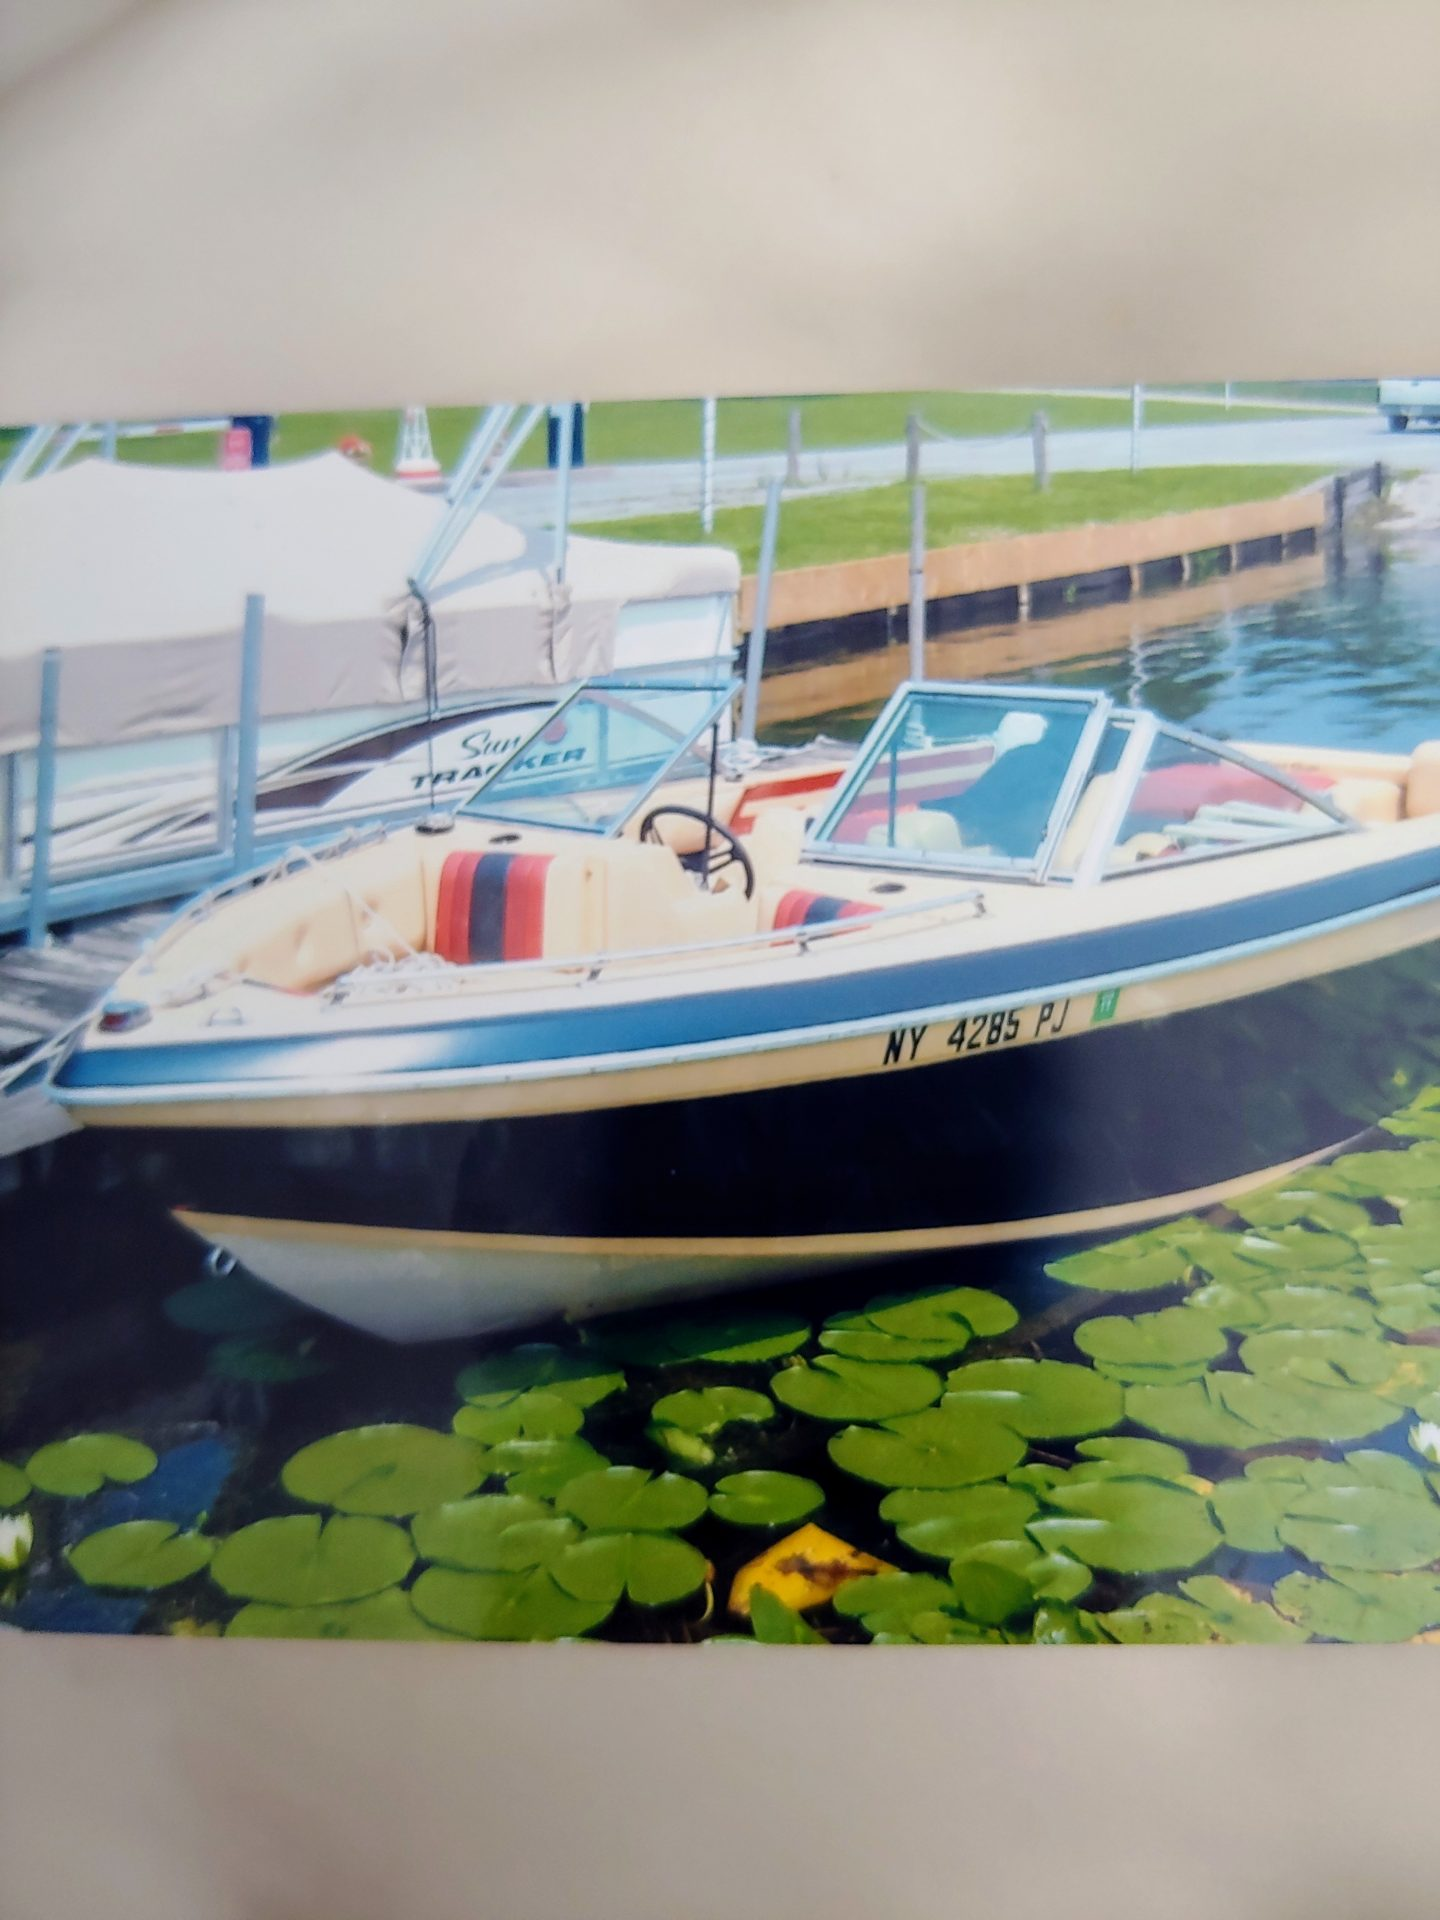 Bob's boat that he loved